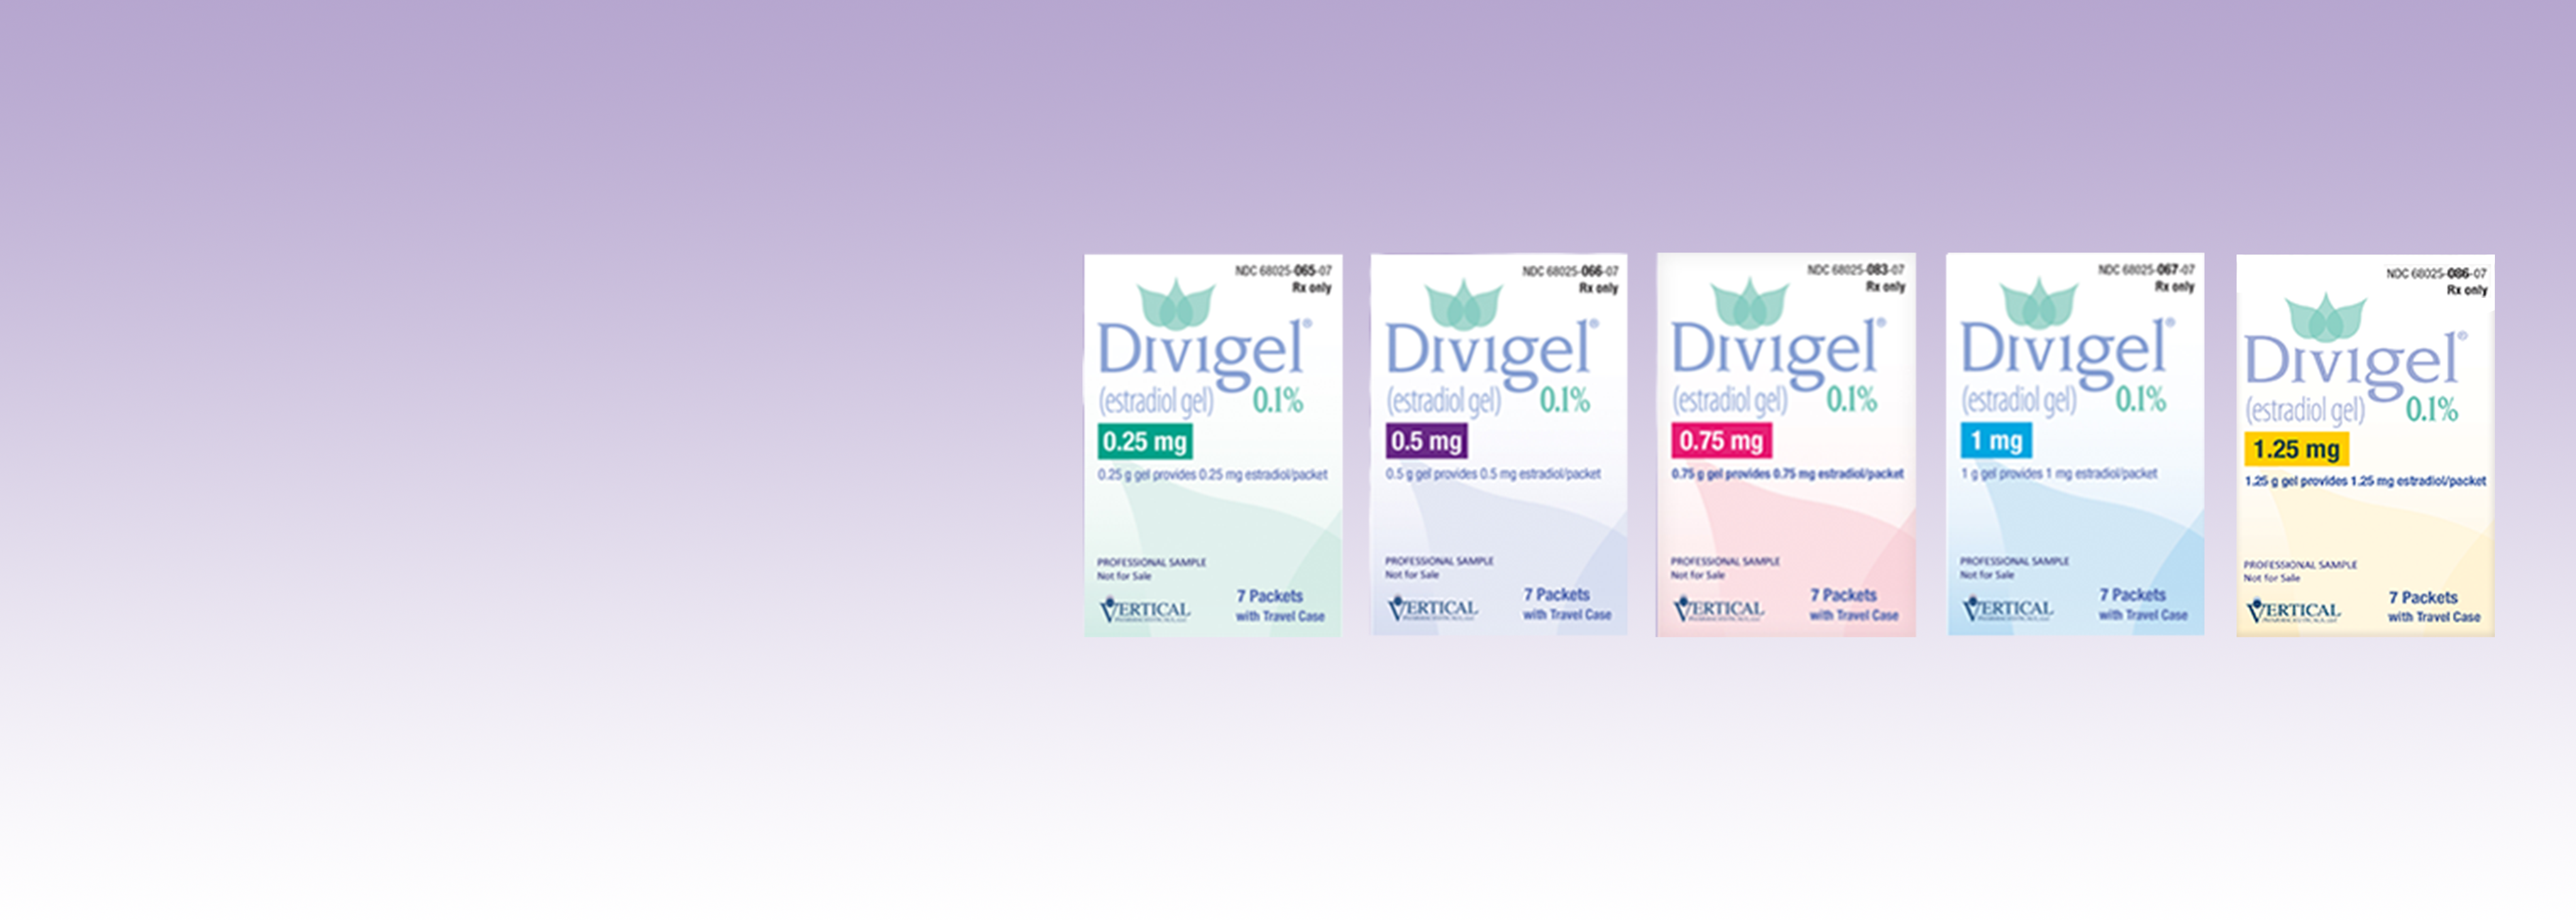 Divigel® comes in 0.25 mg, 0.5 mg, 0.75 mg, 1 mg and 1.25 mg.